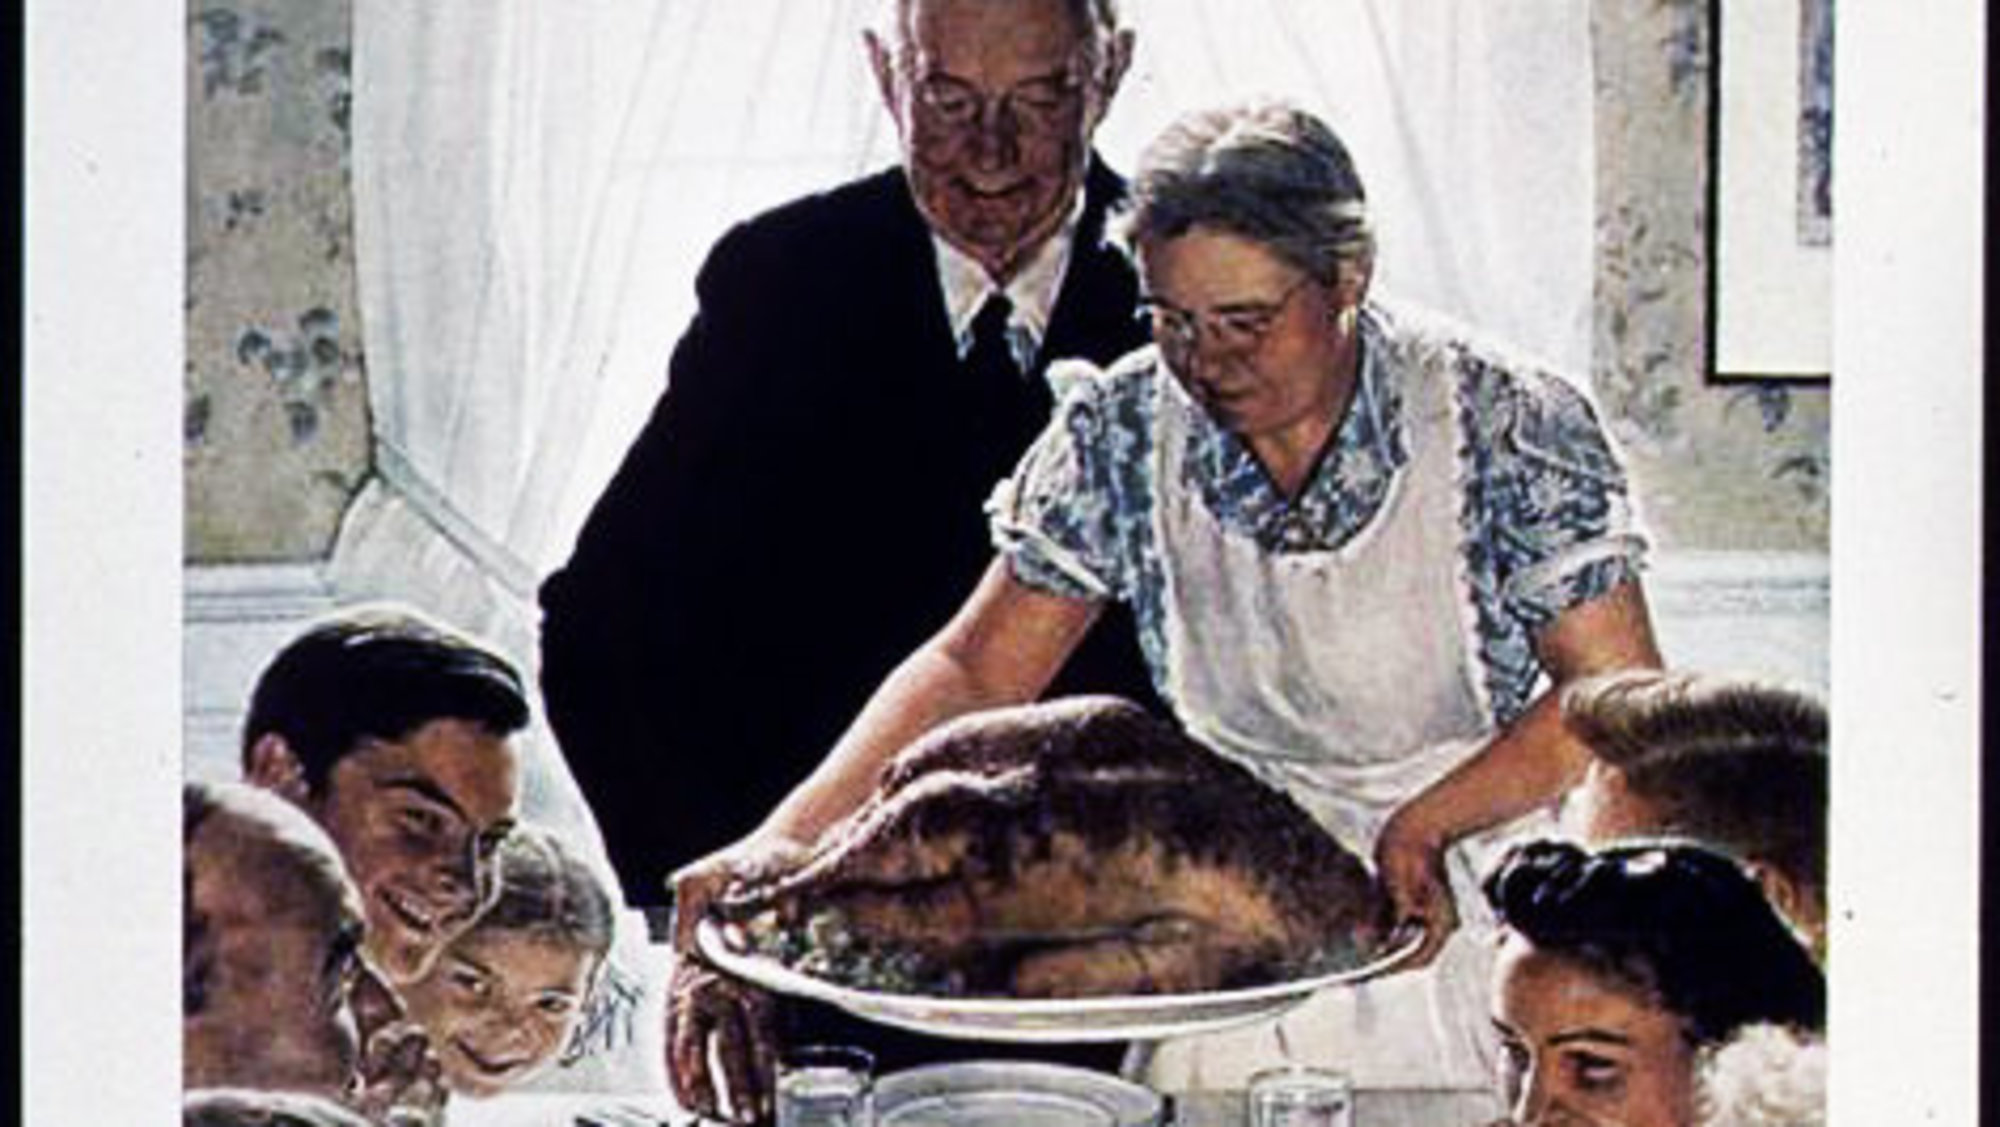 Ah, a traditional Thanksgiving dinner, where the wife does all the work and the husband just carves the bird, then watches football. But this year, our Thanksgiving was nothing like this scene. Not even close.